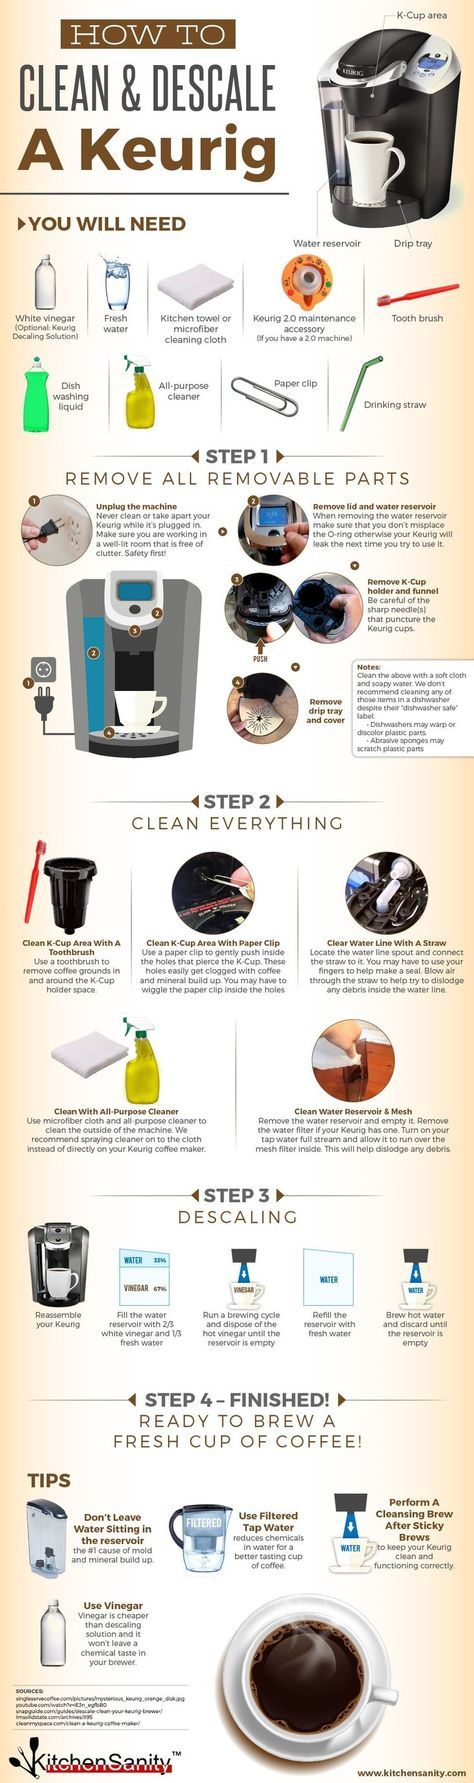 How To Clean Amp Descale A Keurig Coffee Maker Diy Ideas